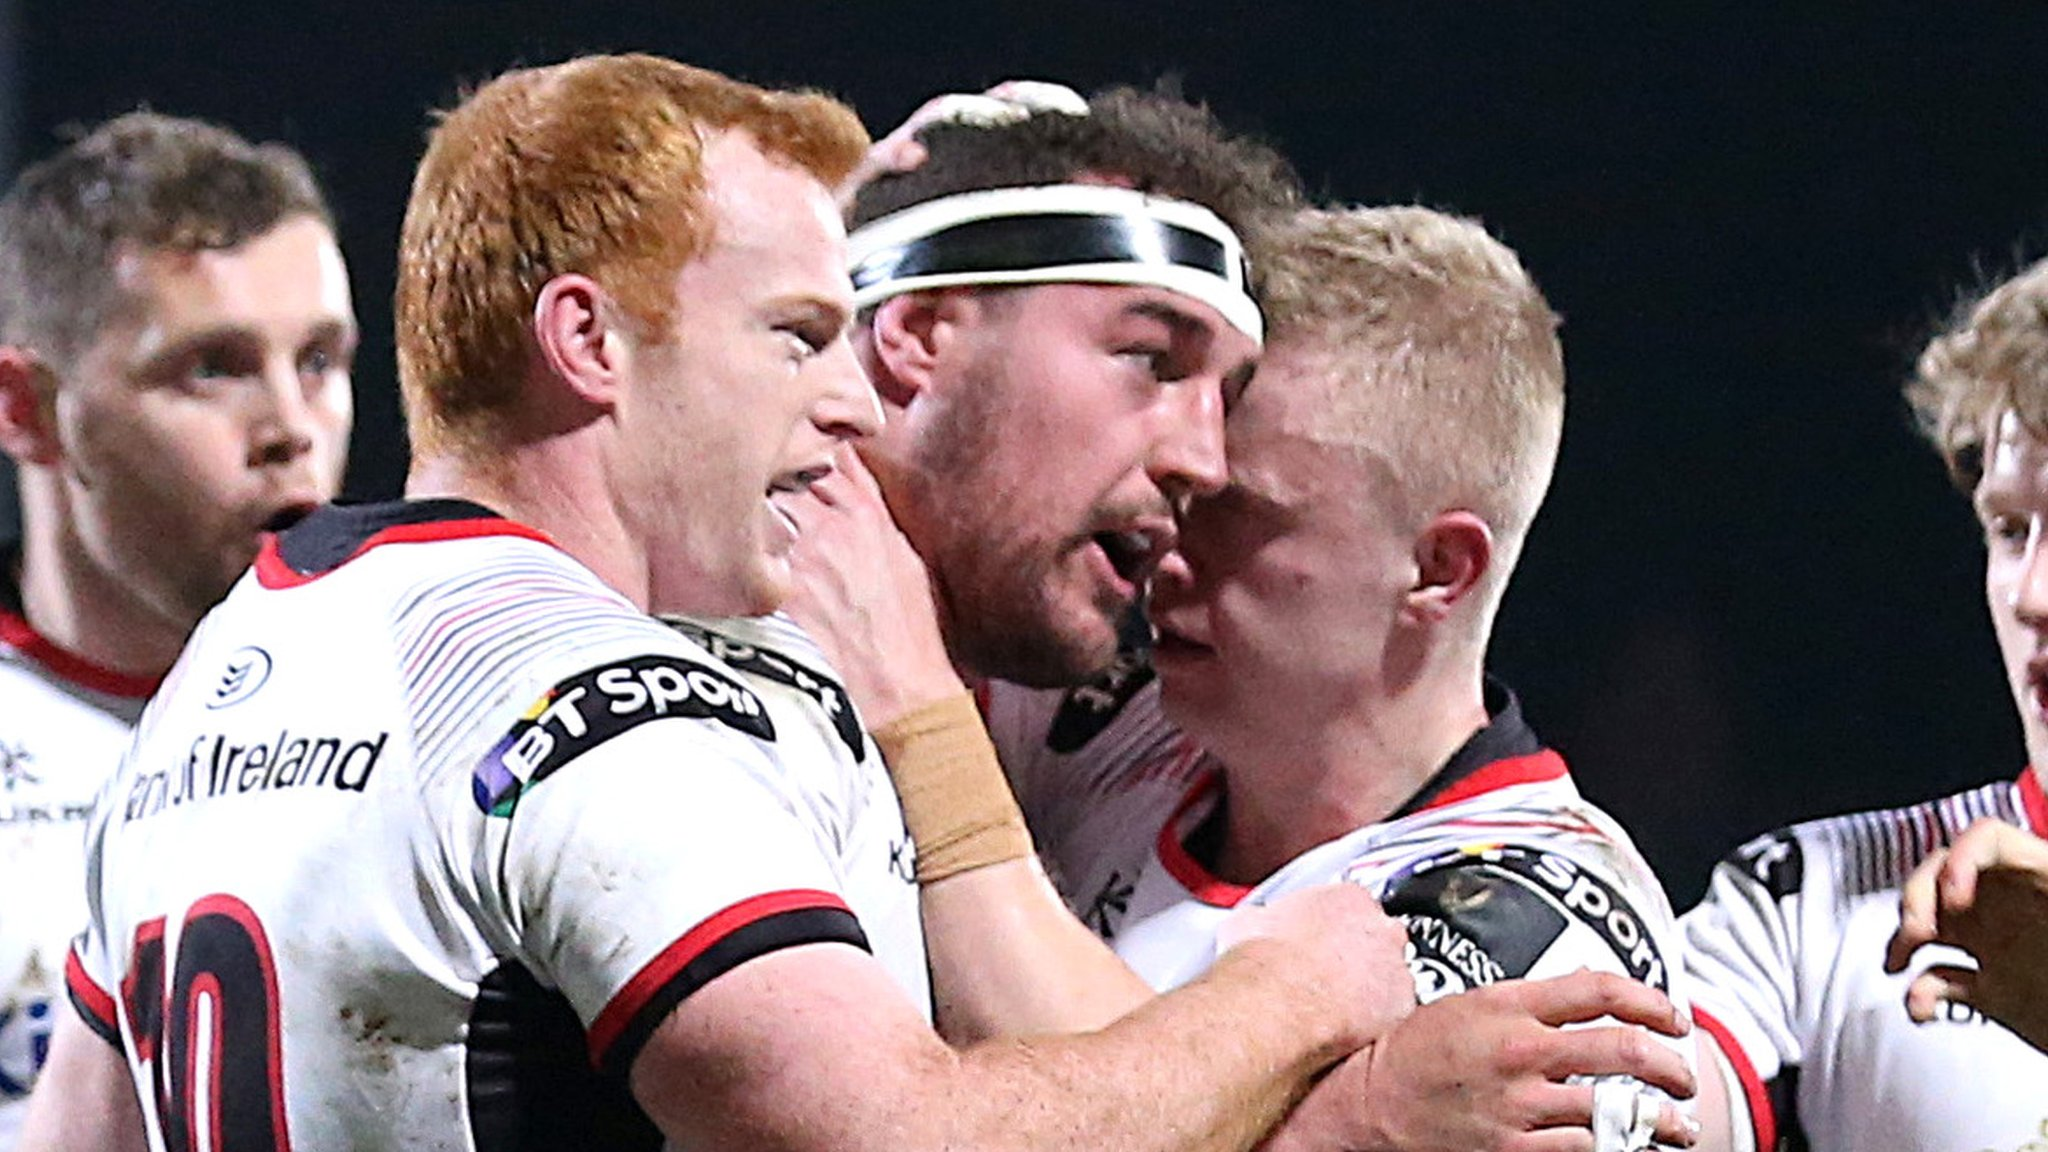 Pro14: Ulster 54-7 Zebre